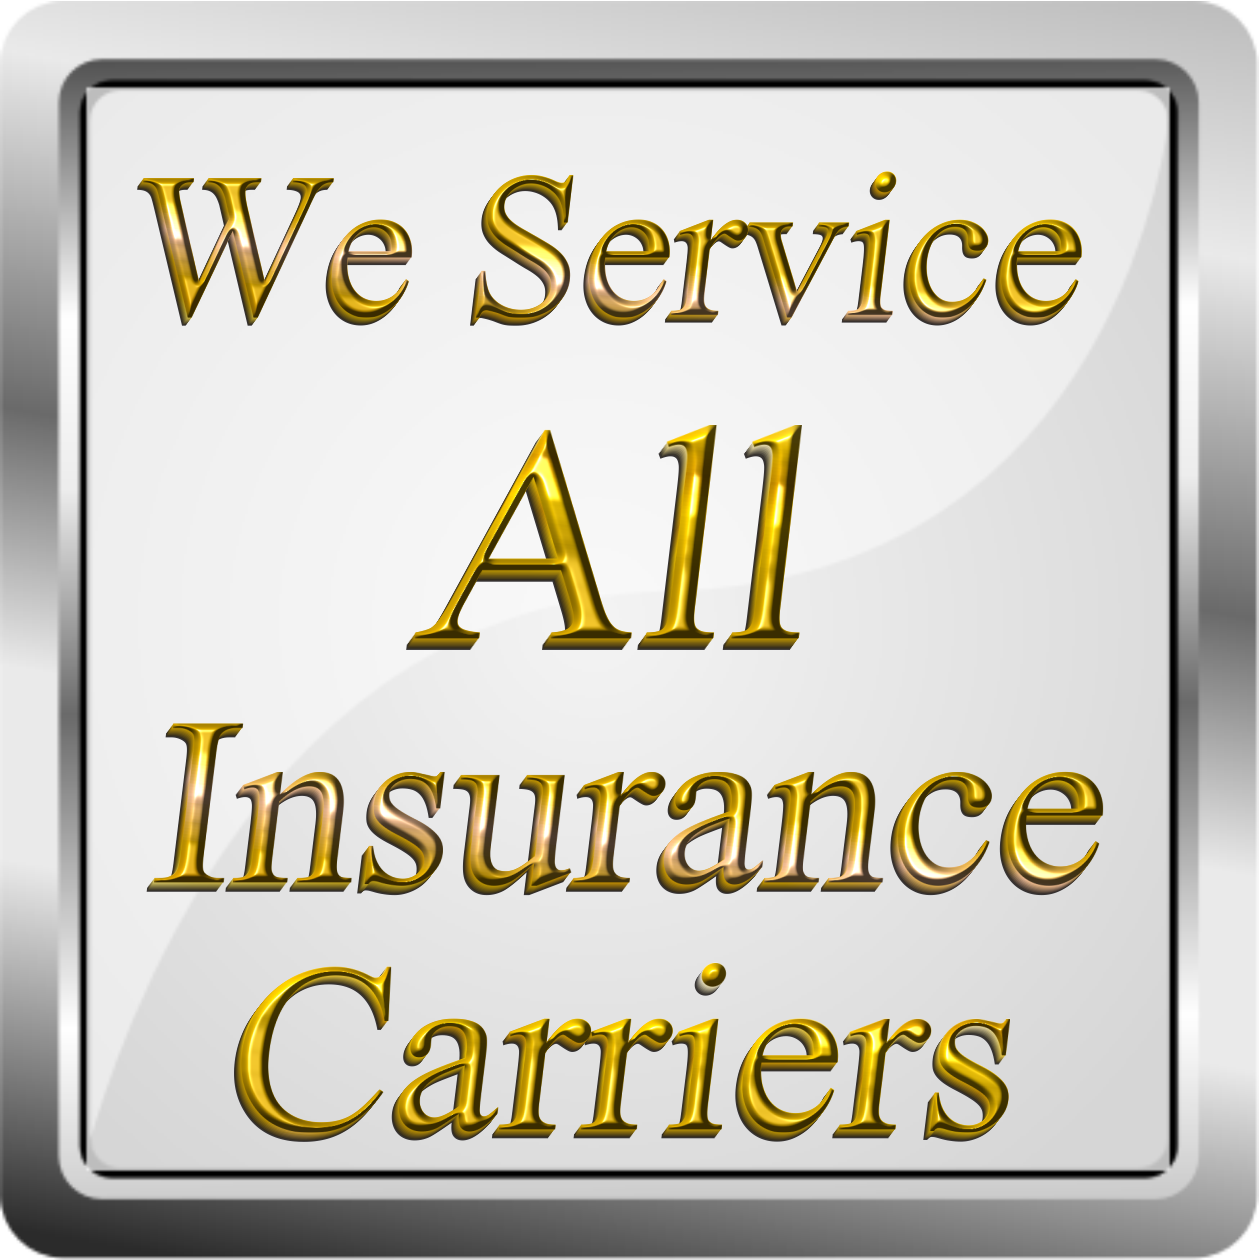 We Service All Insurance Carriers